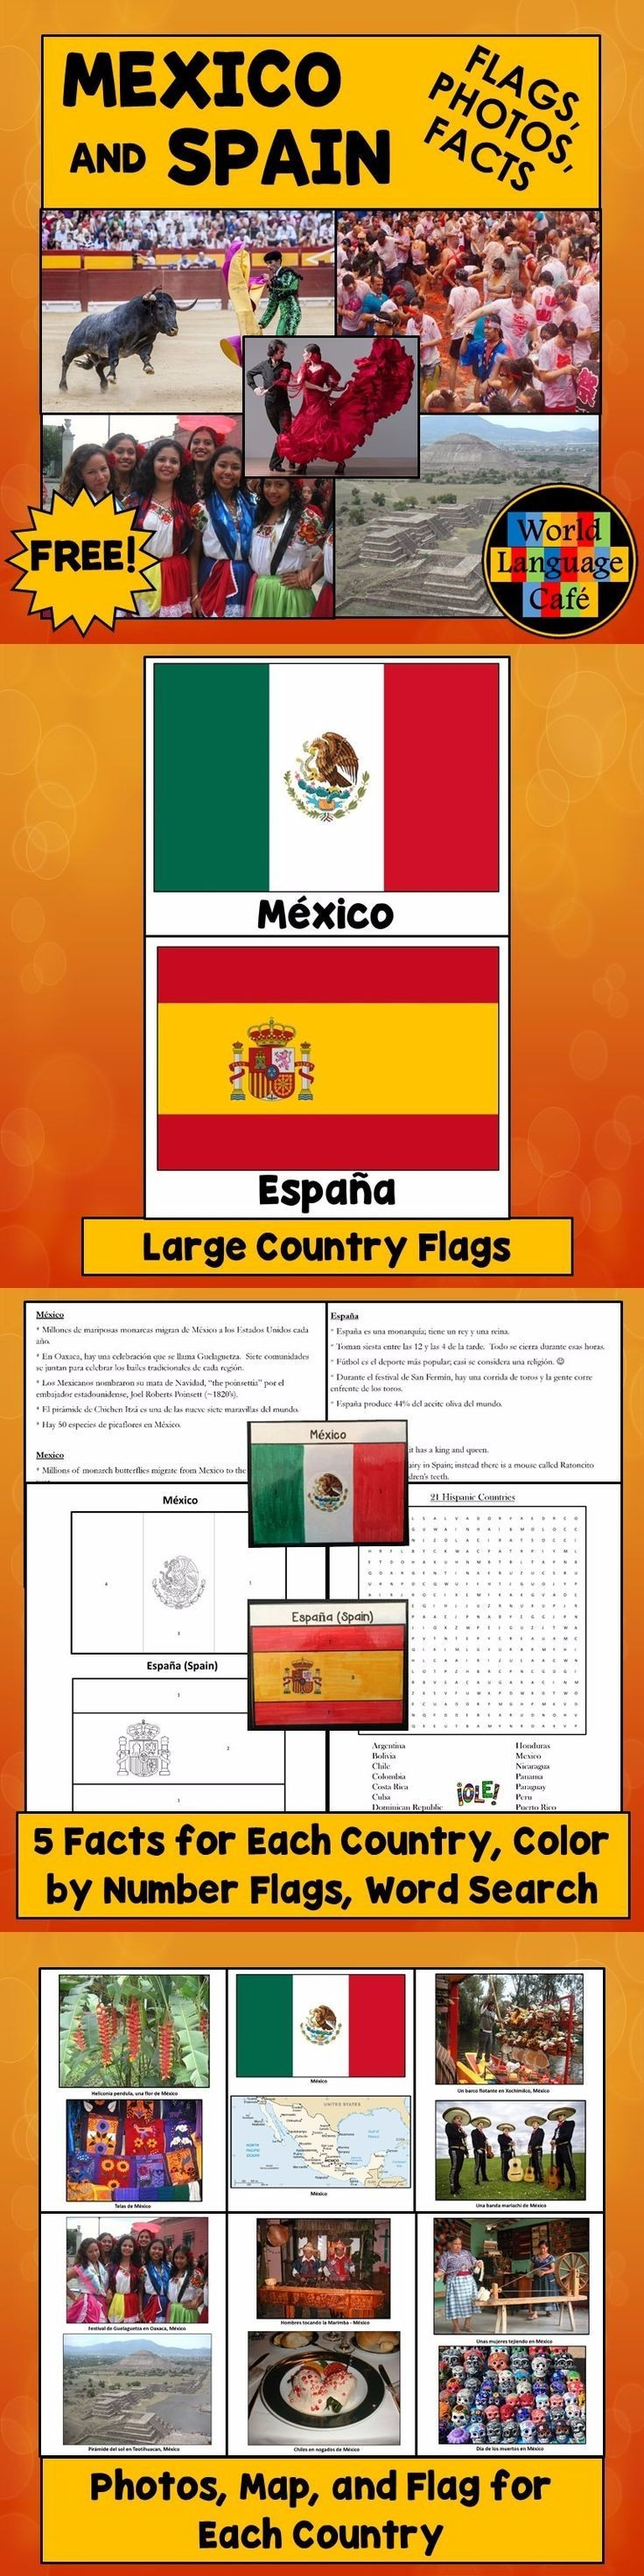 Calendario 2019 Venezuela Con Dias Festivos Más Recientes Mexican Flag Spanish Flag S and Interesting Facts